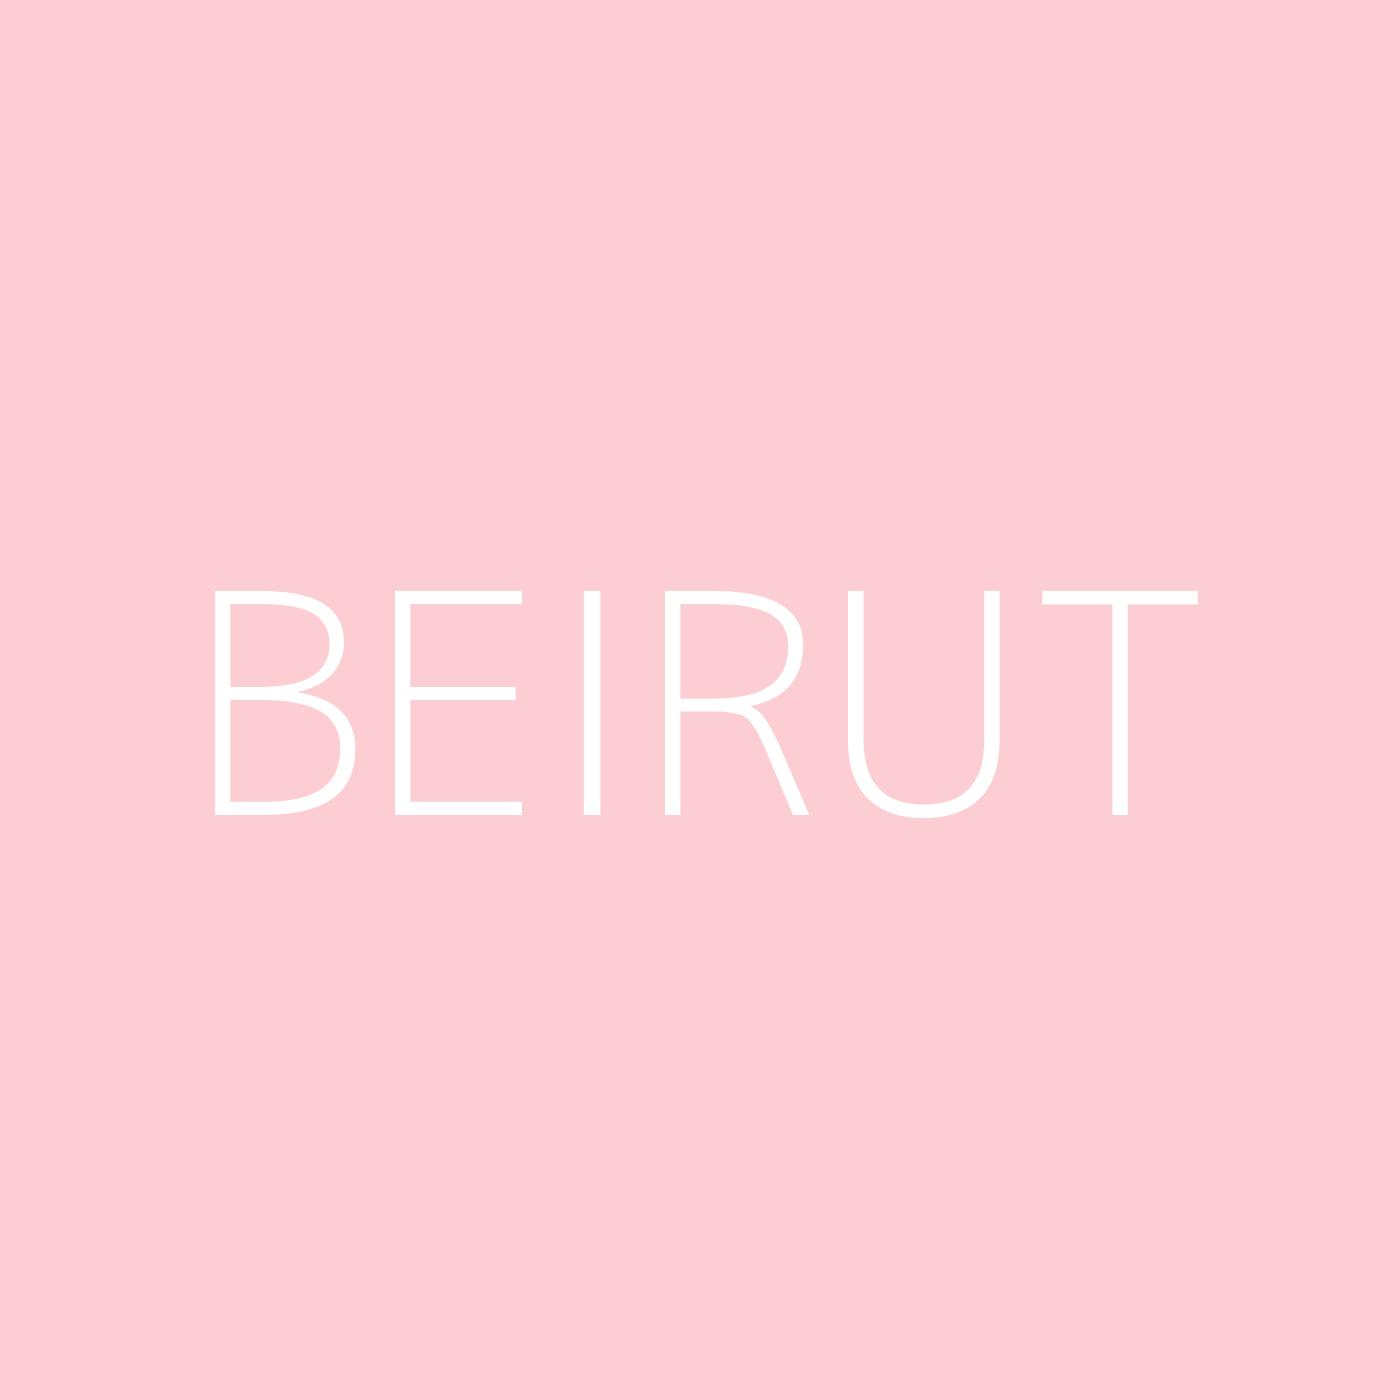 Beirut Playlist Artwork